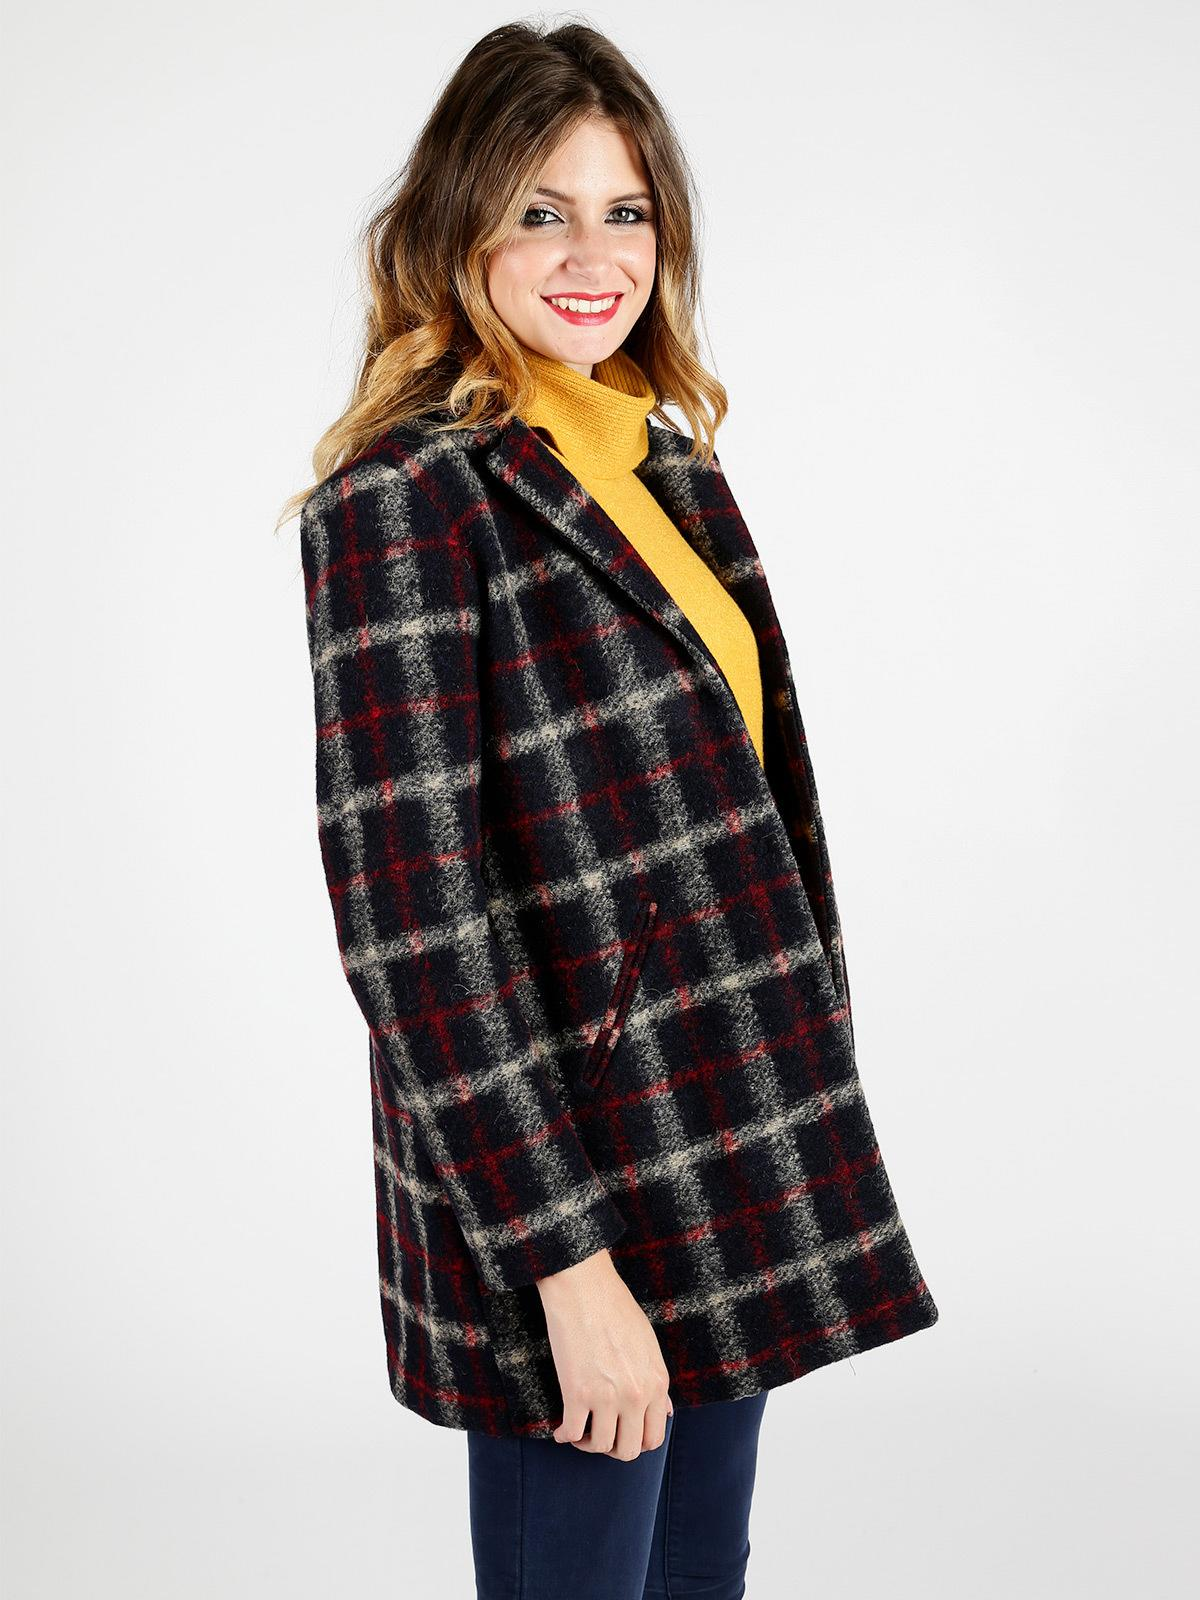 wholesale dealer 958fa c55c6 Cappotto a quadri misto lana graffio | MecShopping